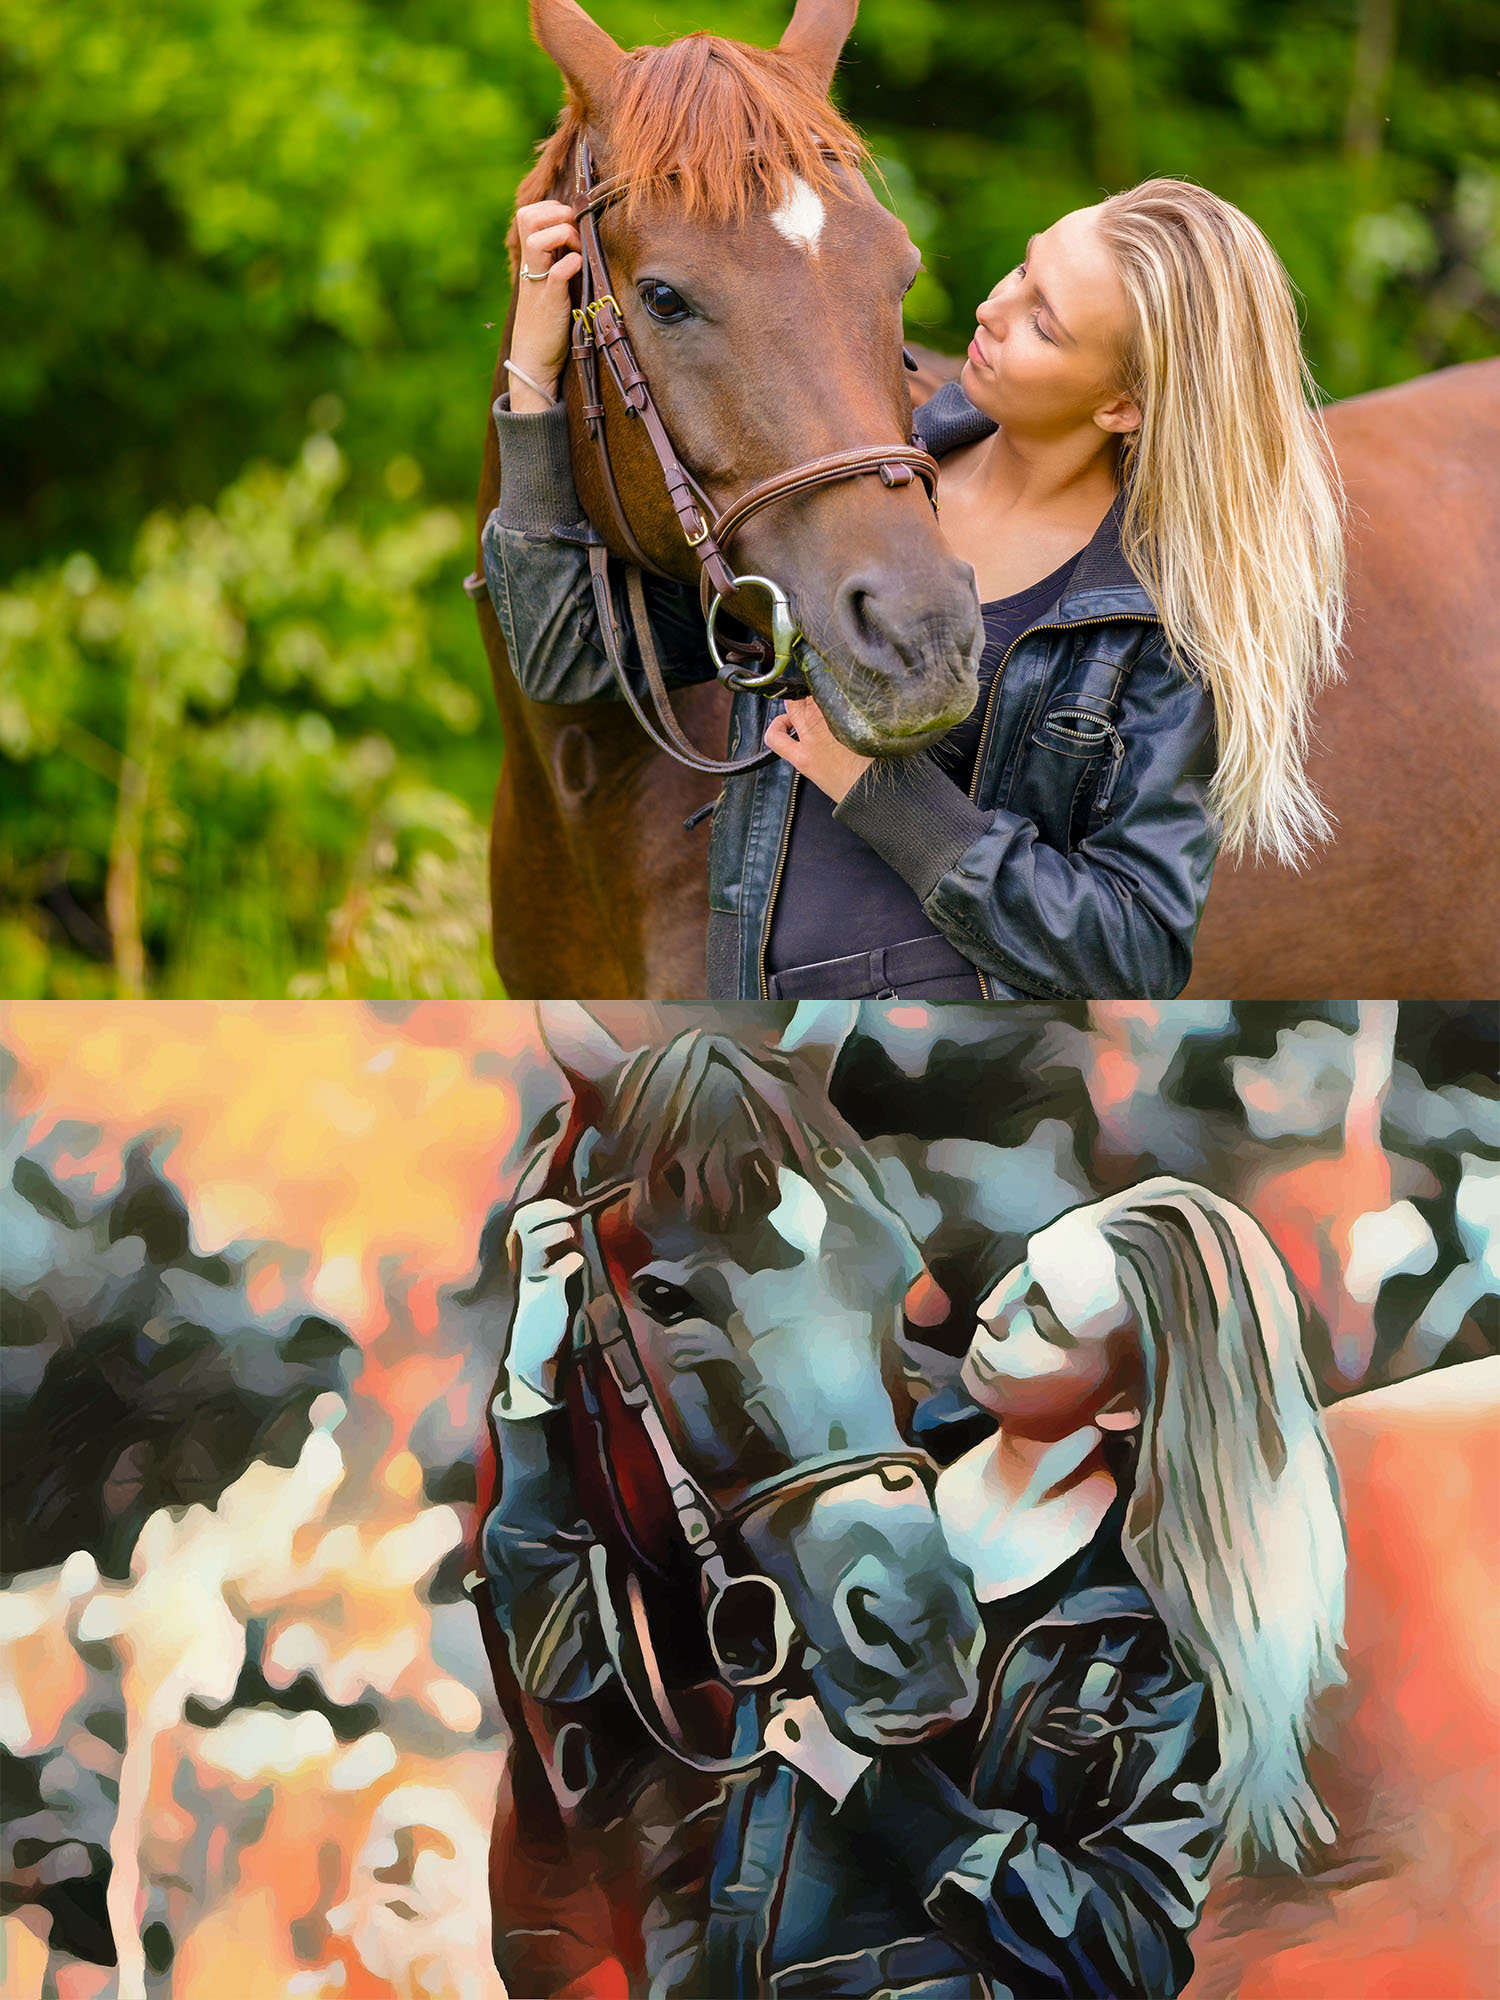 Before and after stylized Image of a woman walking with a horse.